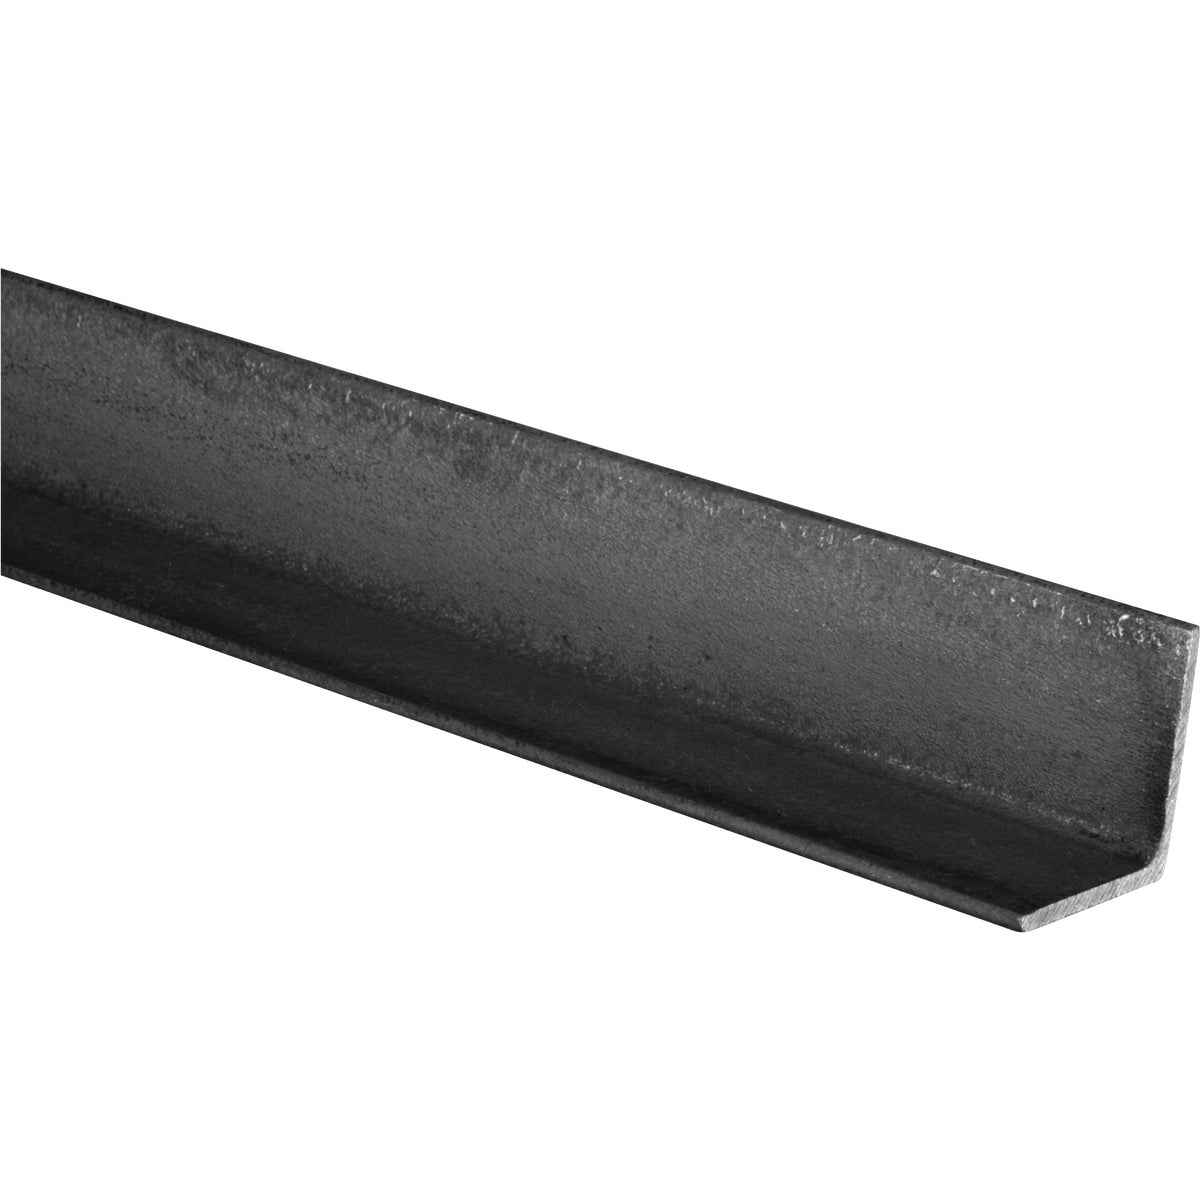 1/8X1-1/2X6' HR ANGLE - N215475 by National Mfg Co